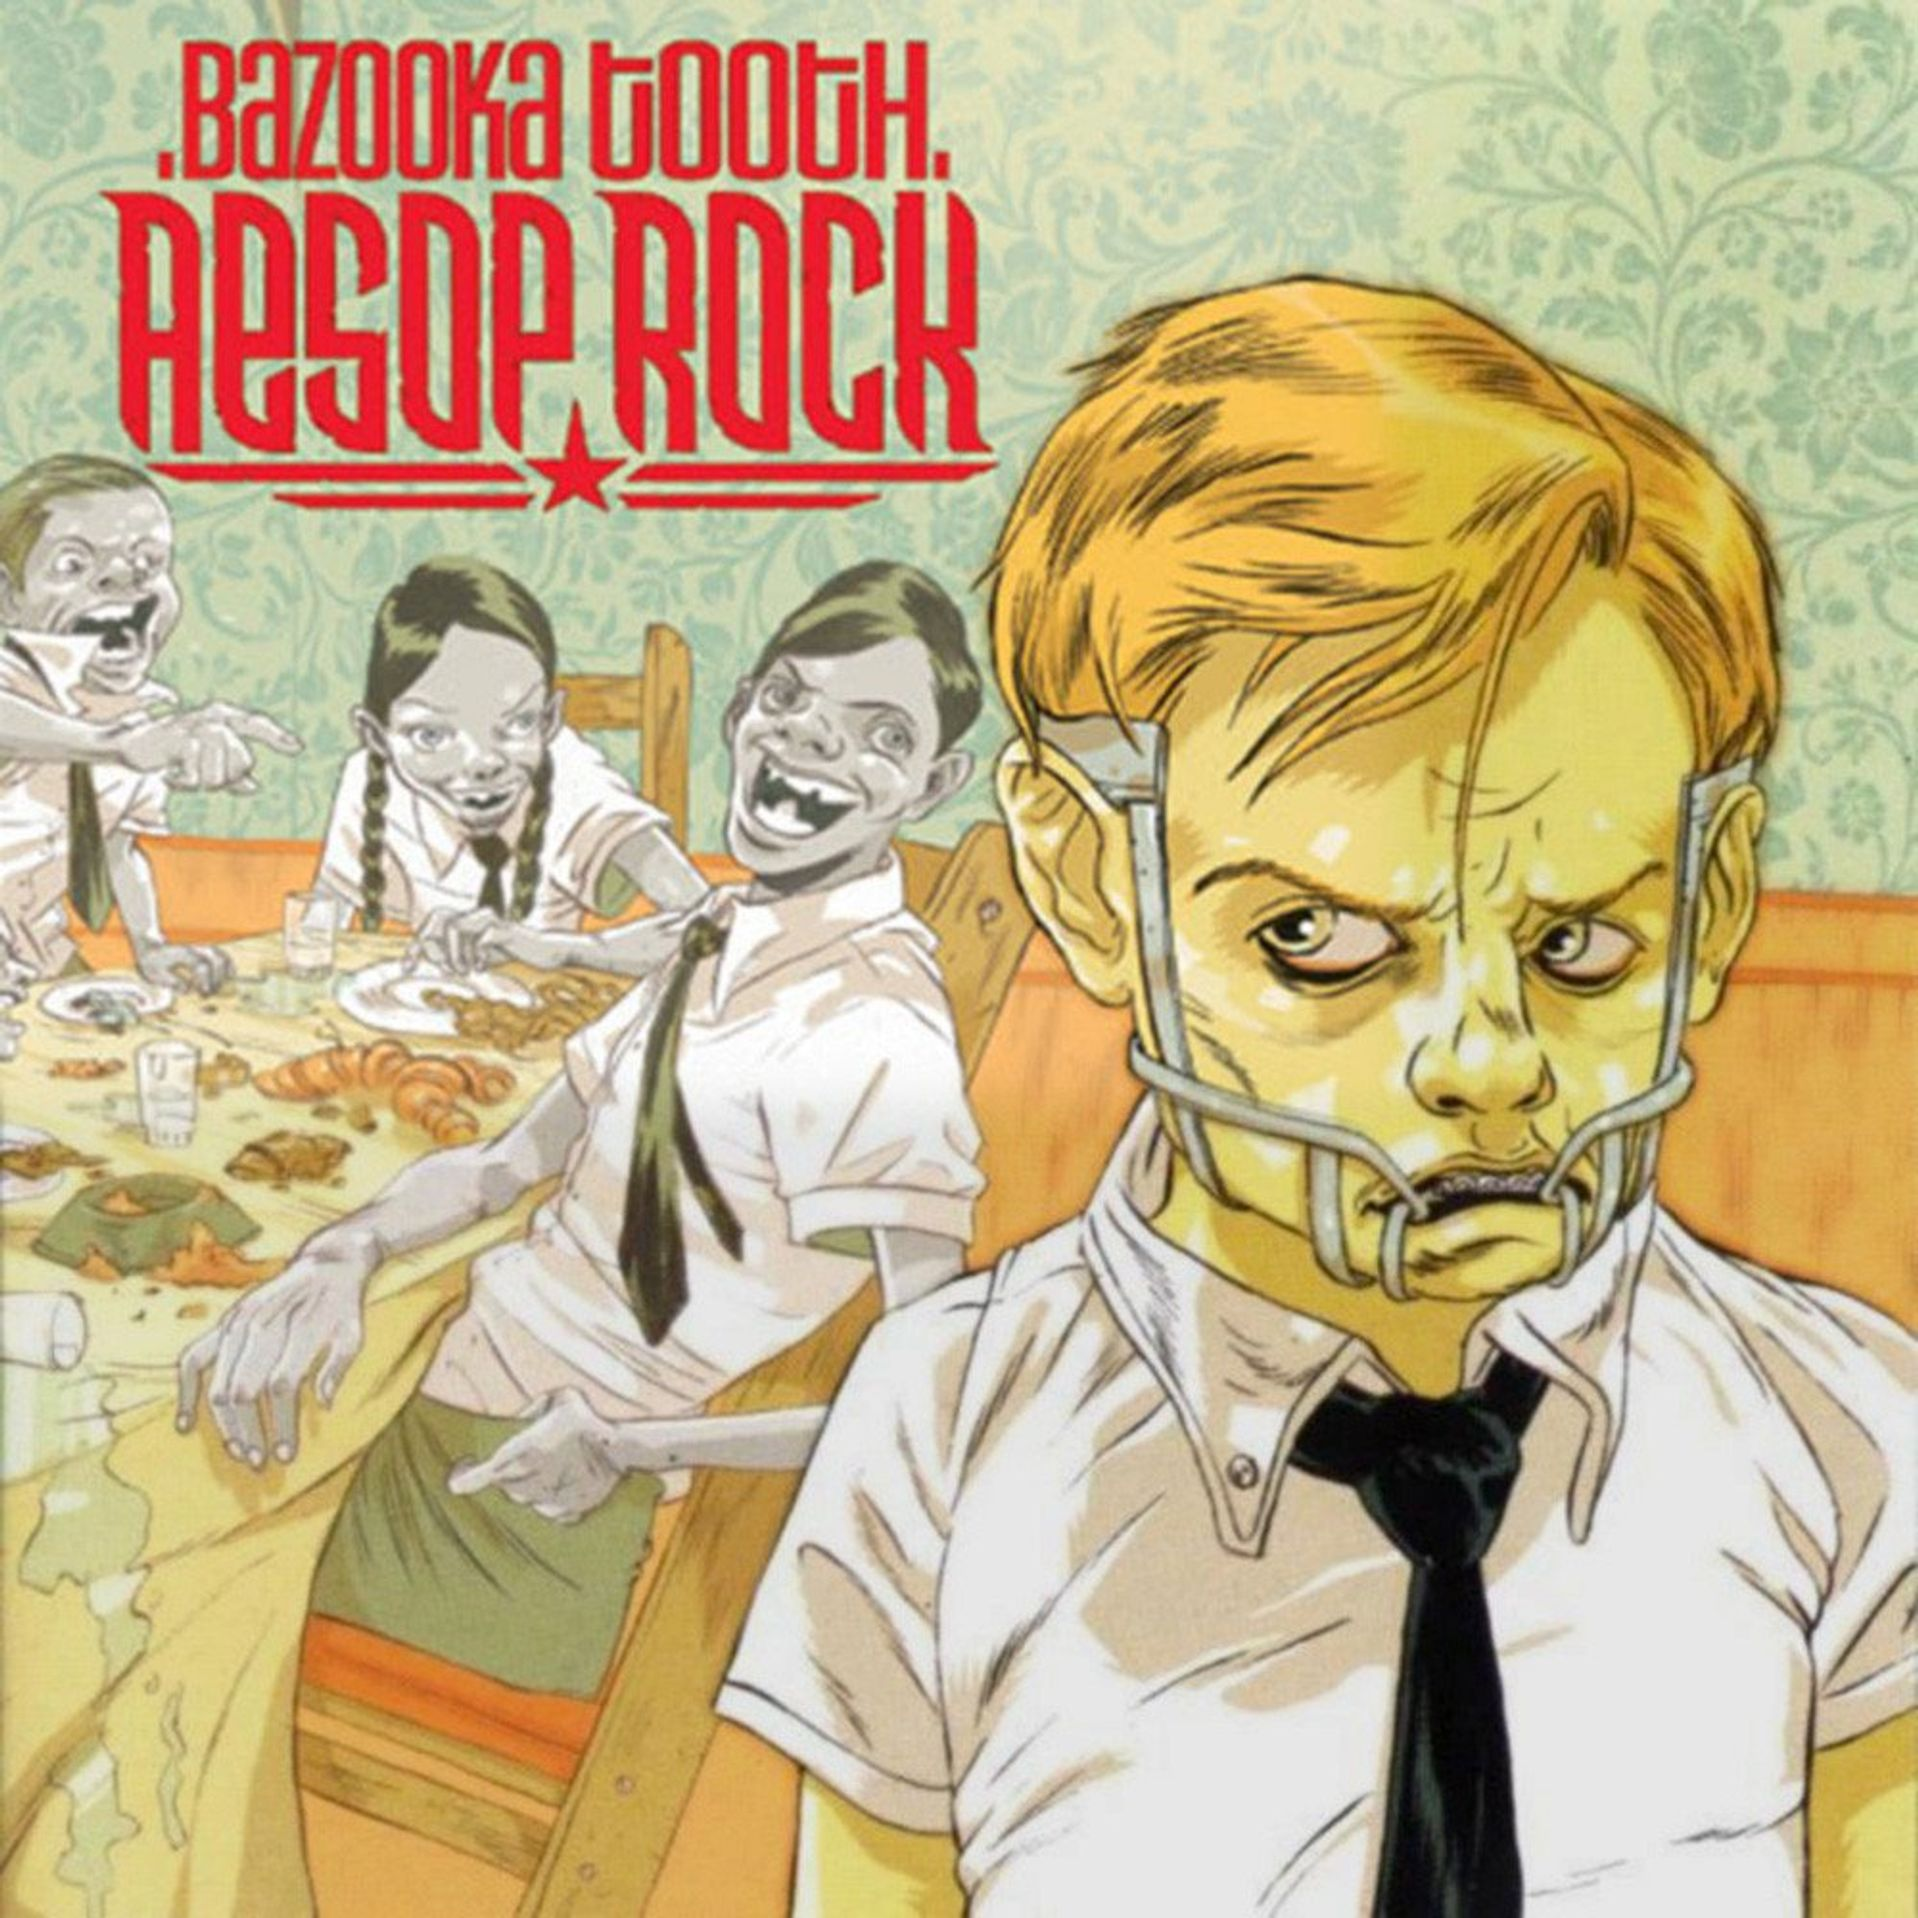 Album Title: Bazooka Tooth by: Aesop Rock